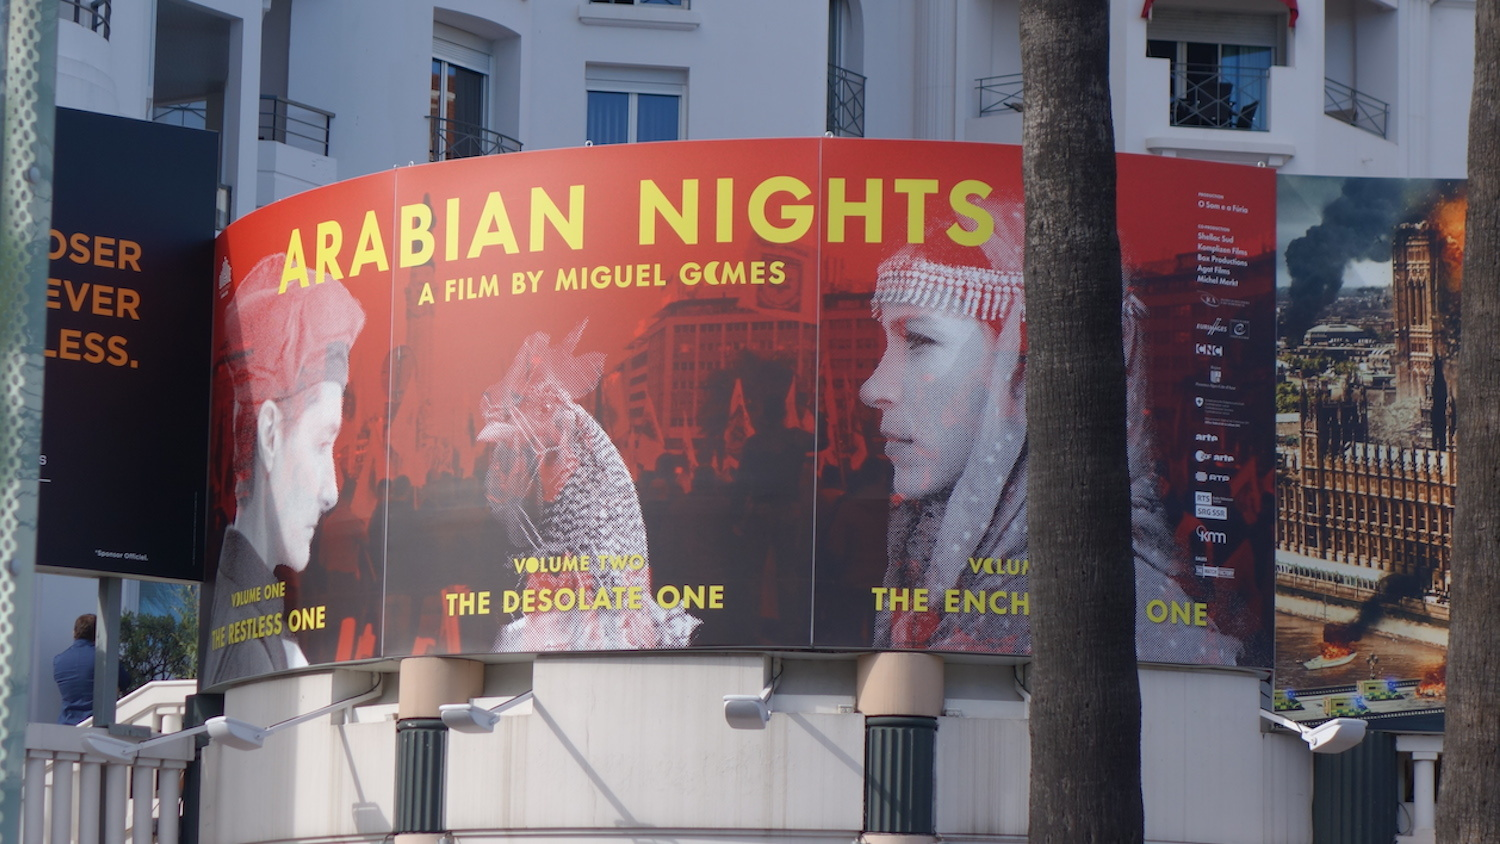 Affiche 1001 Nuits - Arabian Nights - Miguel Gomes